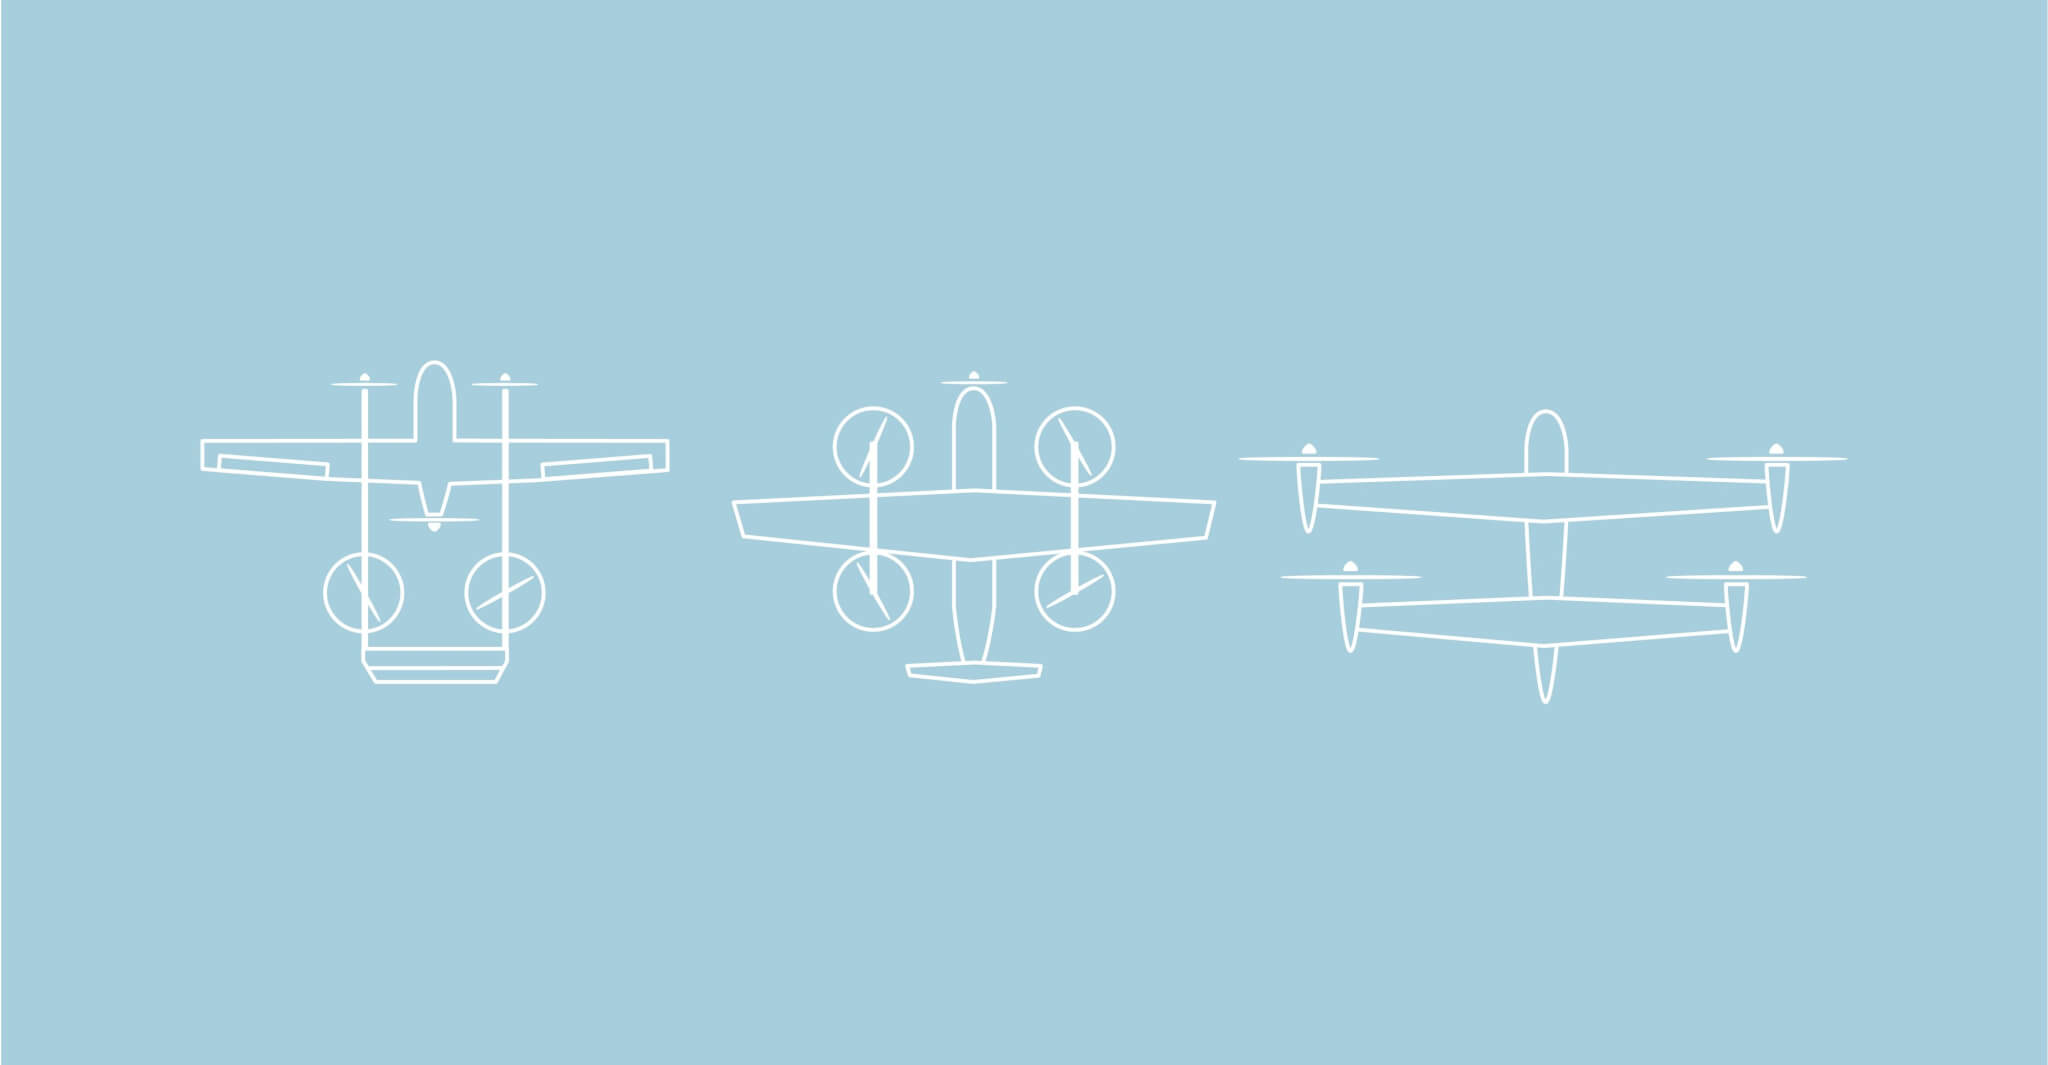 Types of quadplanes